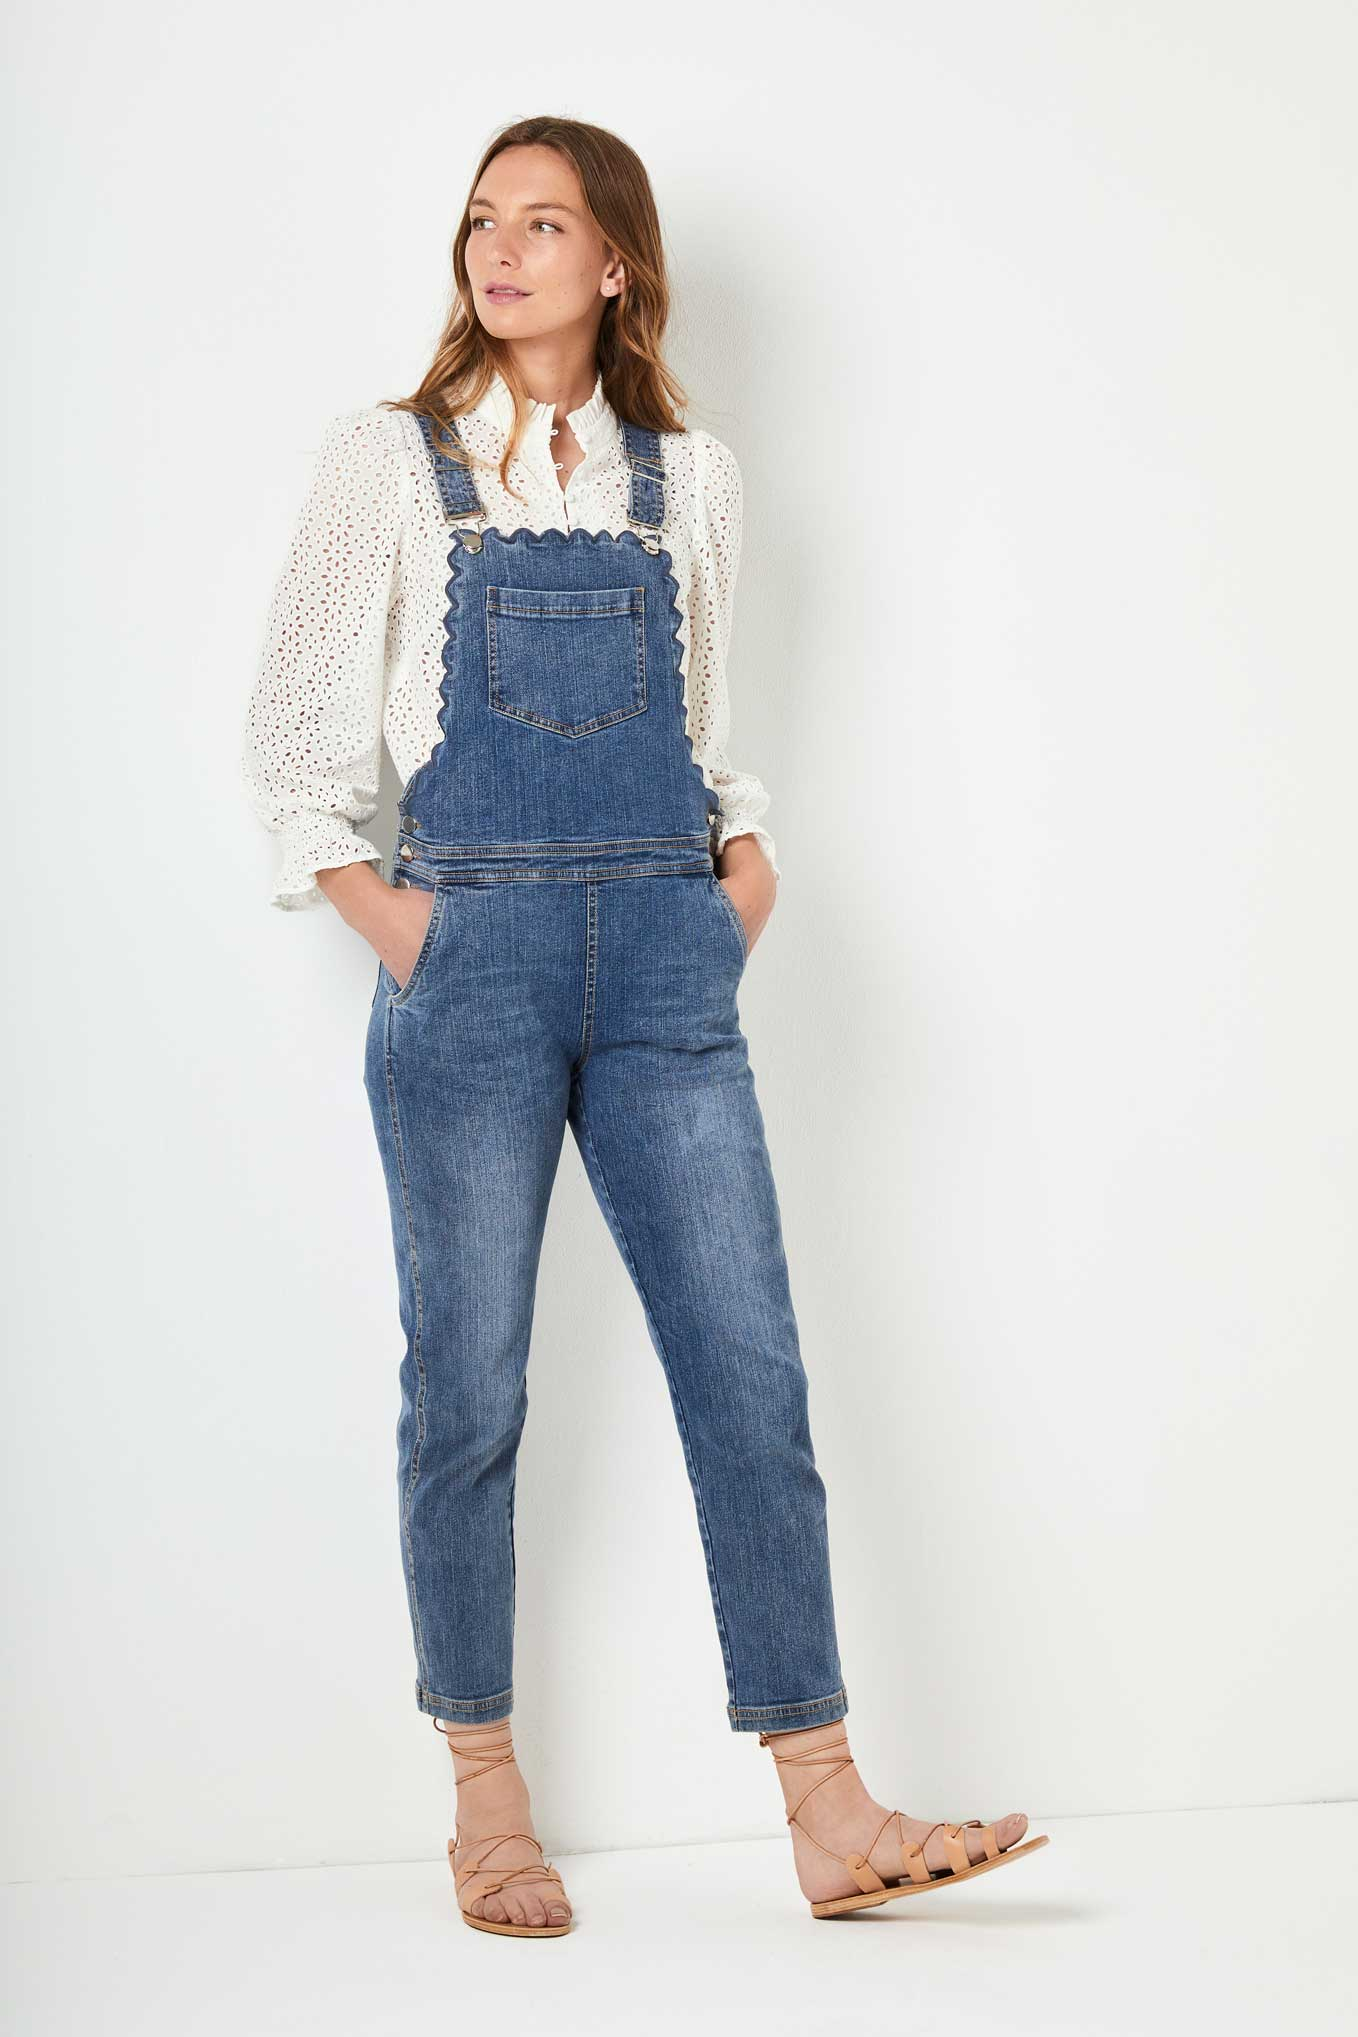 Scarlett Scallop Dungaree - Mid Wash